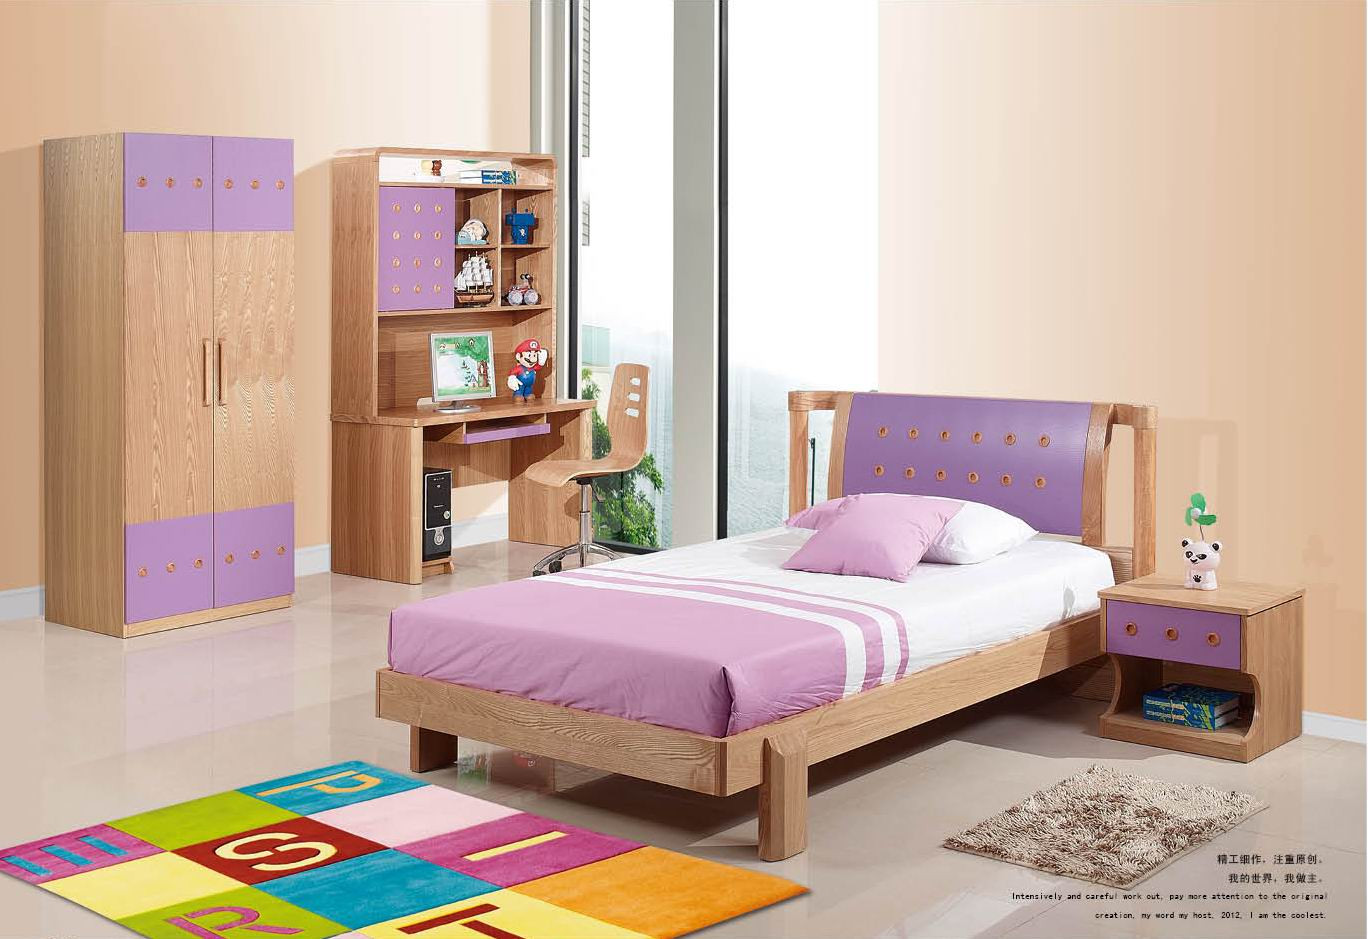 Best ideas about Kids Room Set . Save or Pin Kid Bedroom Set Now.